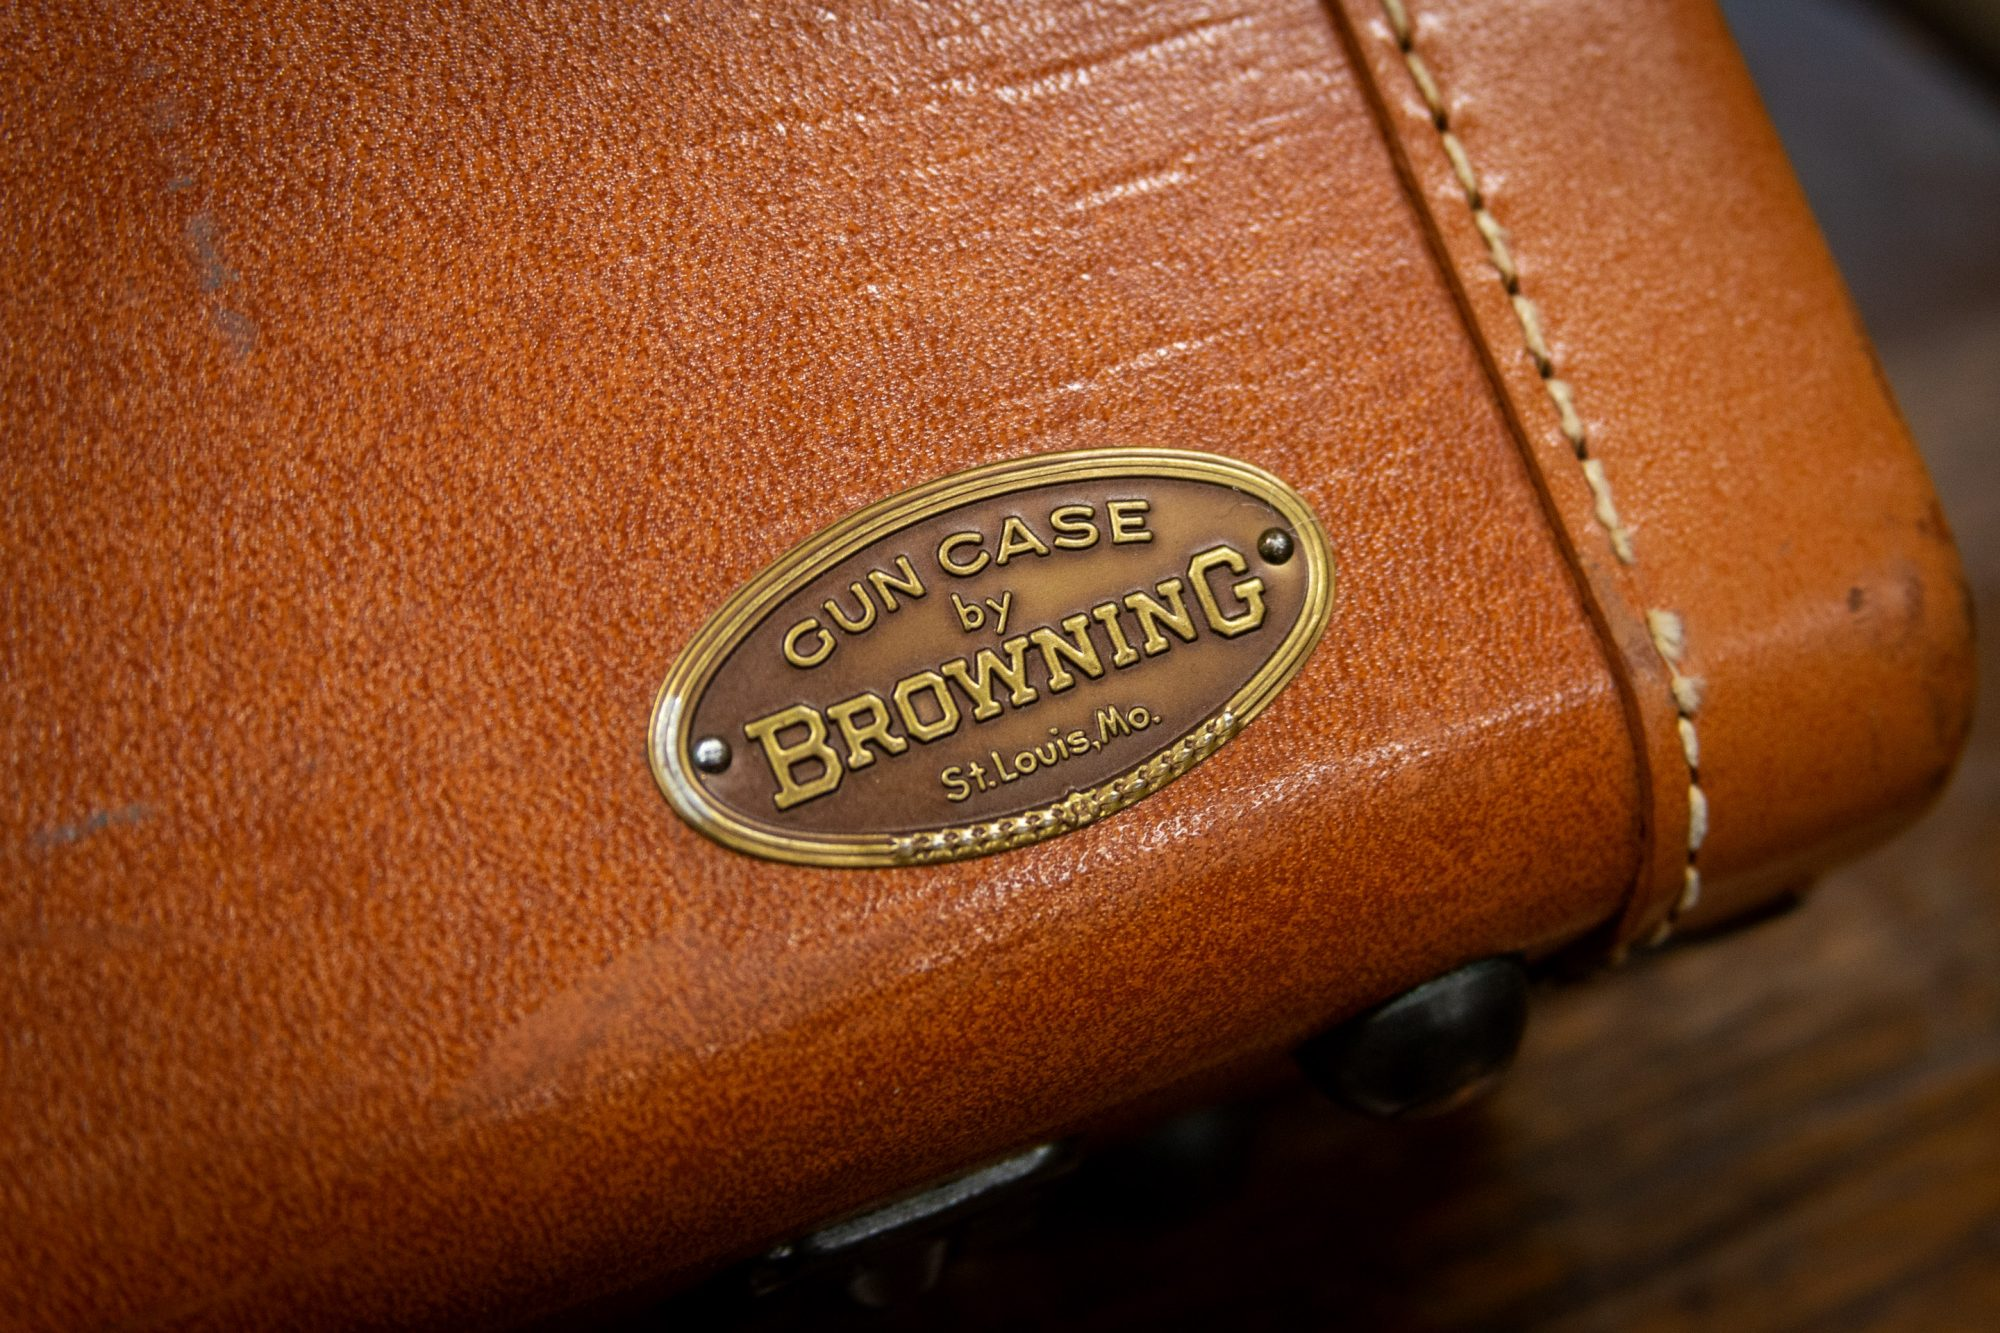 Photo of a pre-owned Browning A5 shotgun case, for sale by Turnbull Restoration of Bloomfield, NY